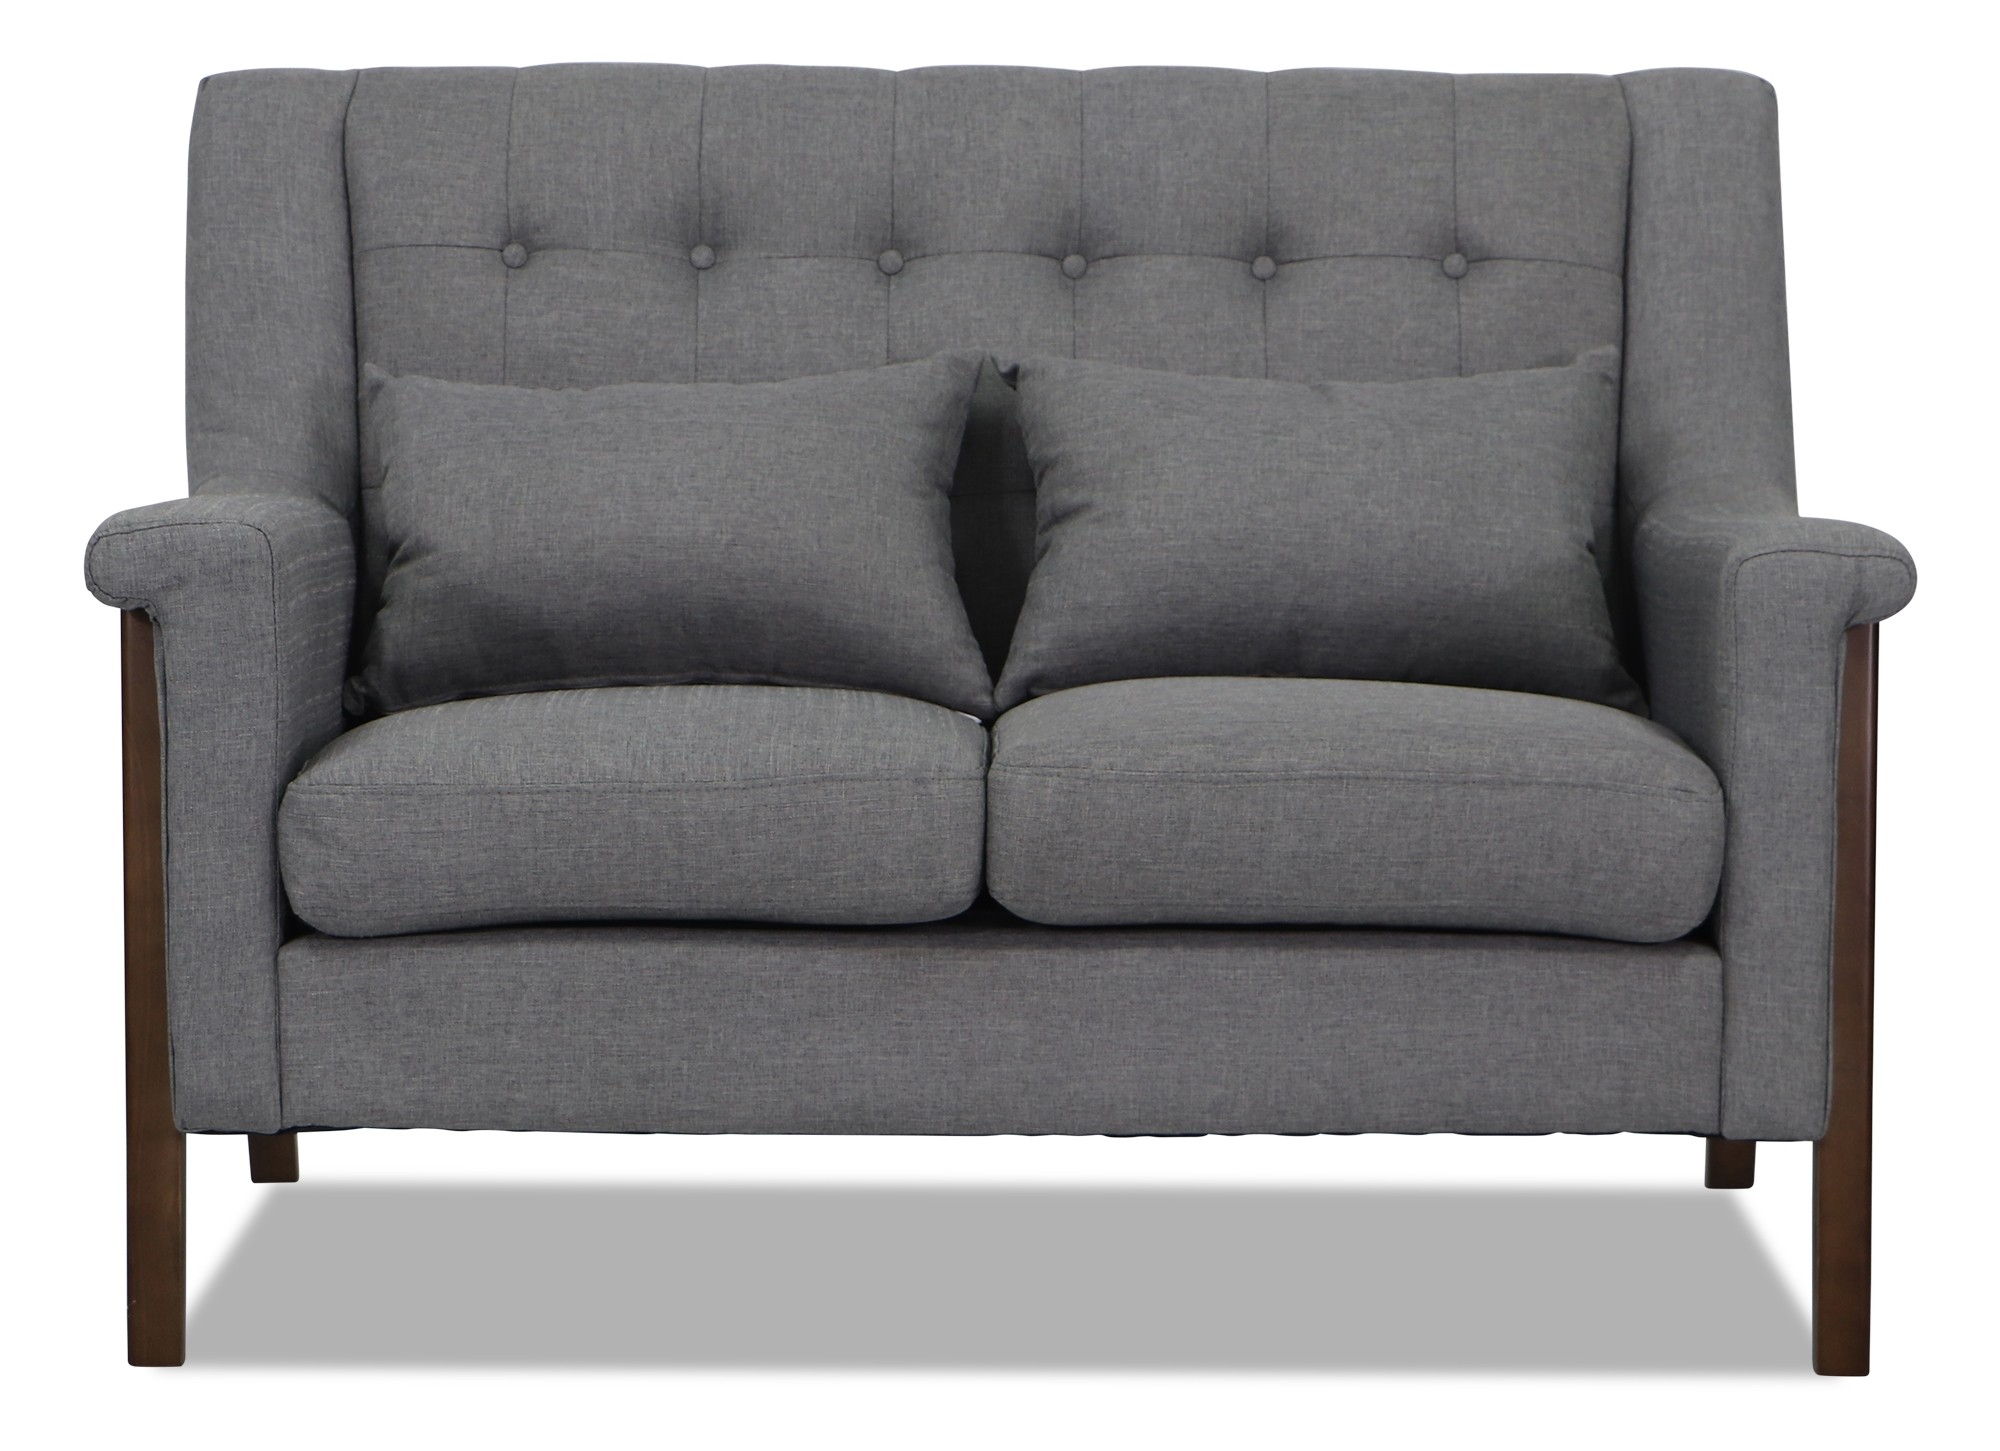 2 seater sofa singapore pictures of sofas with throws patty furniture and home décor fortytwo